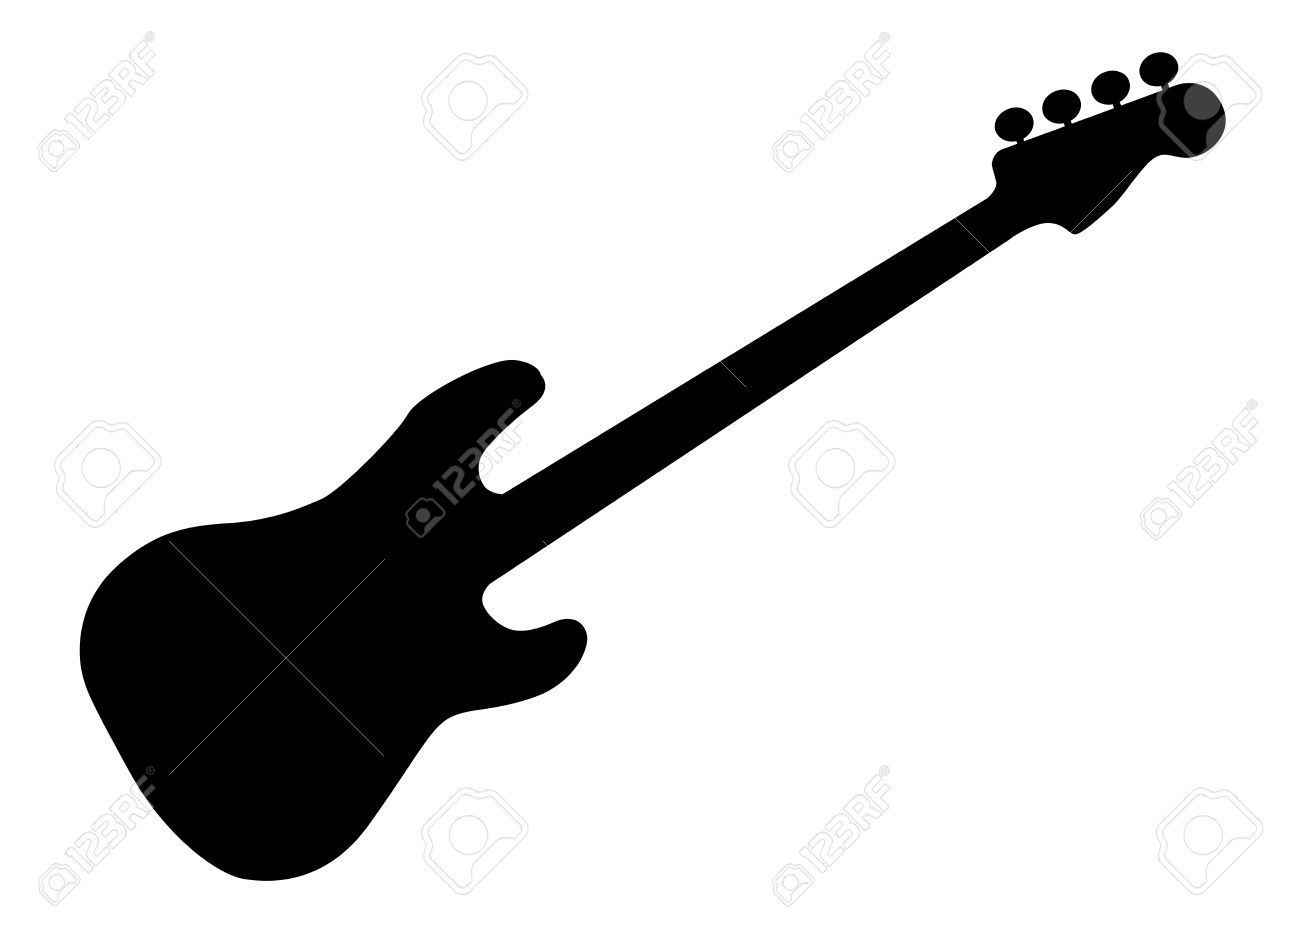 Image Result For Guitar Silhouette Png Silhouette Png Silhouette Art Inspiration